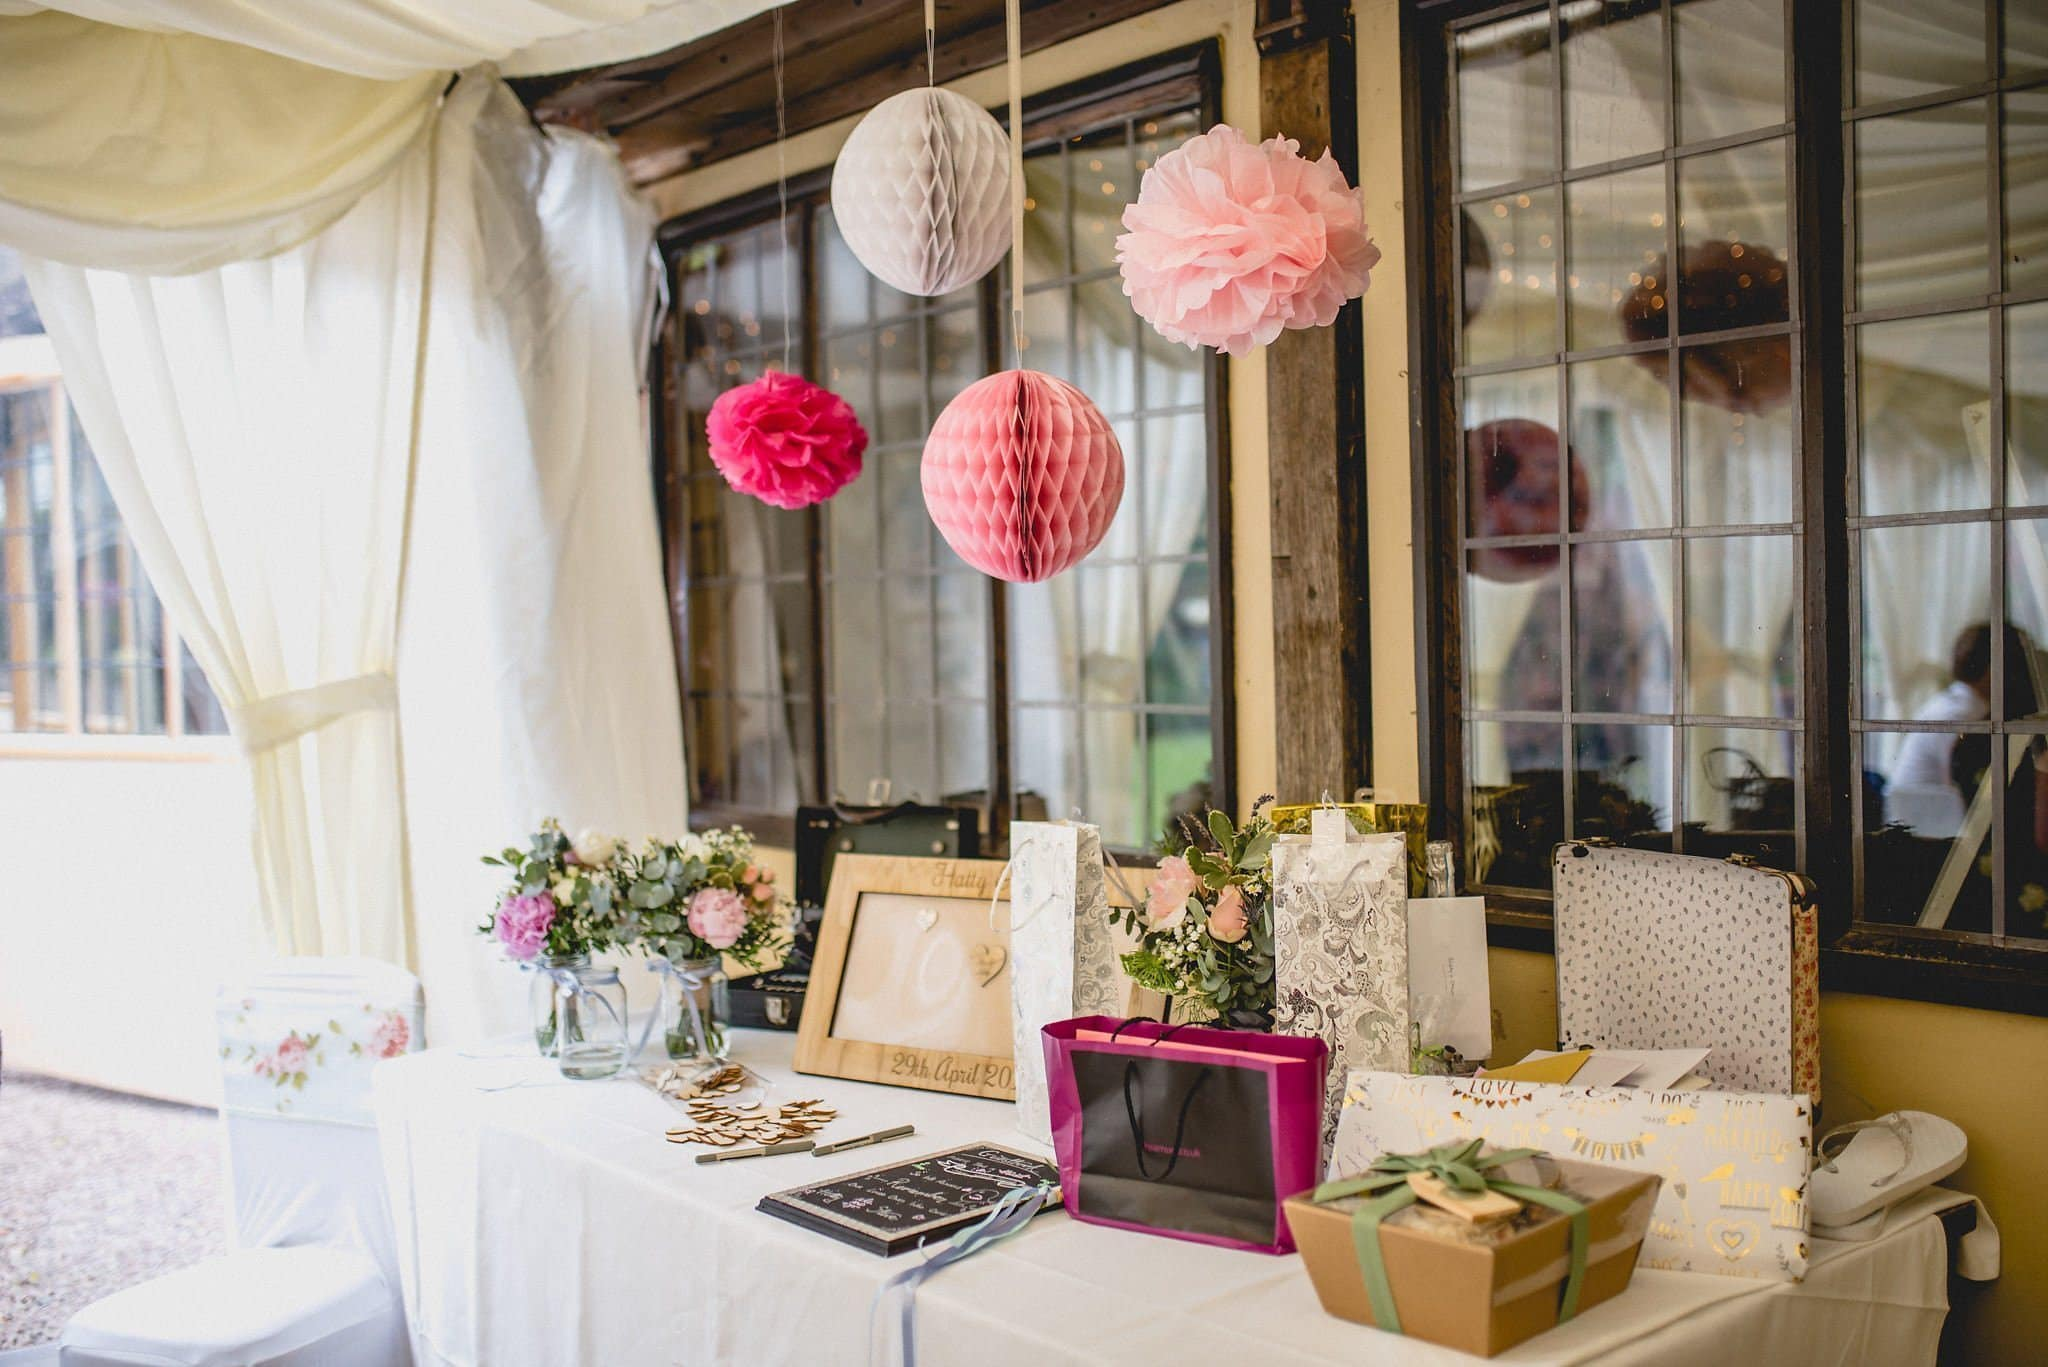 Pom poms and honeycomb balls hang over the guestbook table at Birtsmorton Court